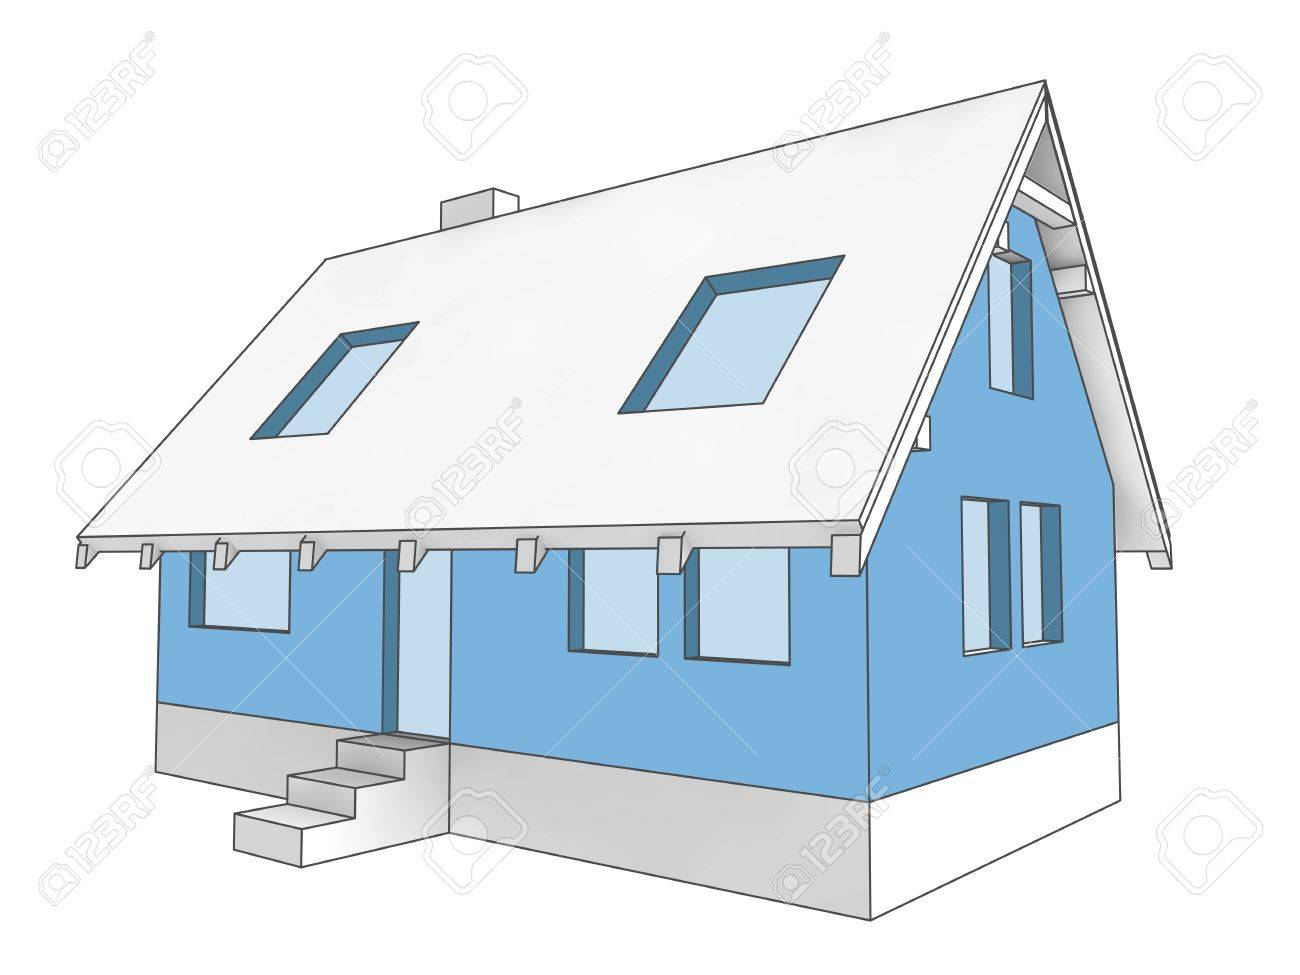 hight resolution of illustration isolated diagram icon building facade of house colored in blue illustration